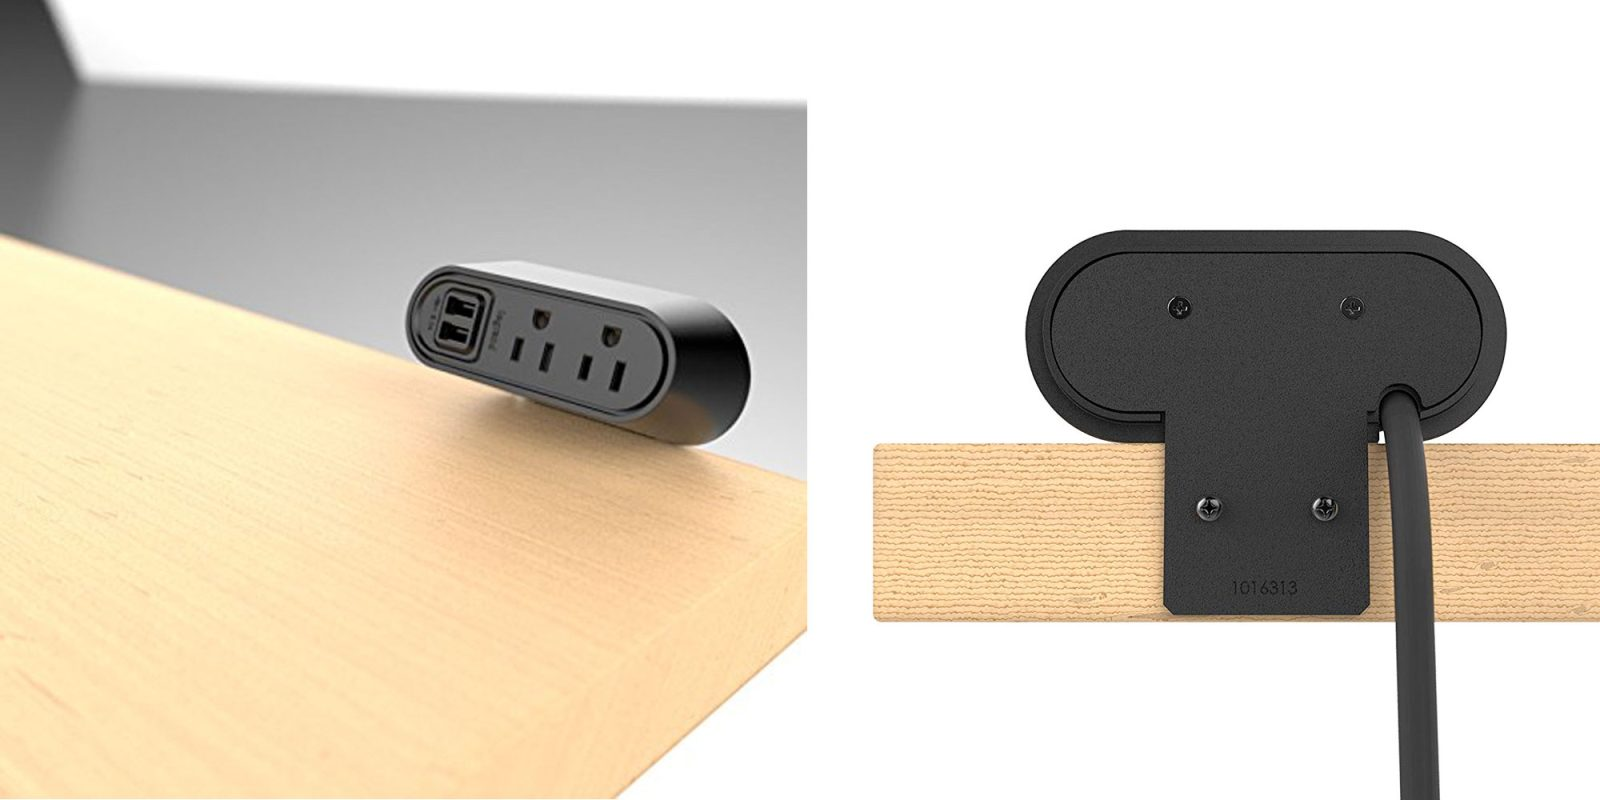 Get power where you need it: This charging station has two 3.1A USB ports & more for $24